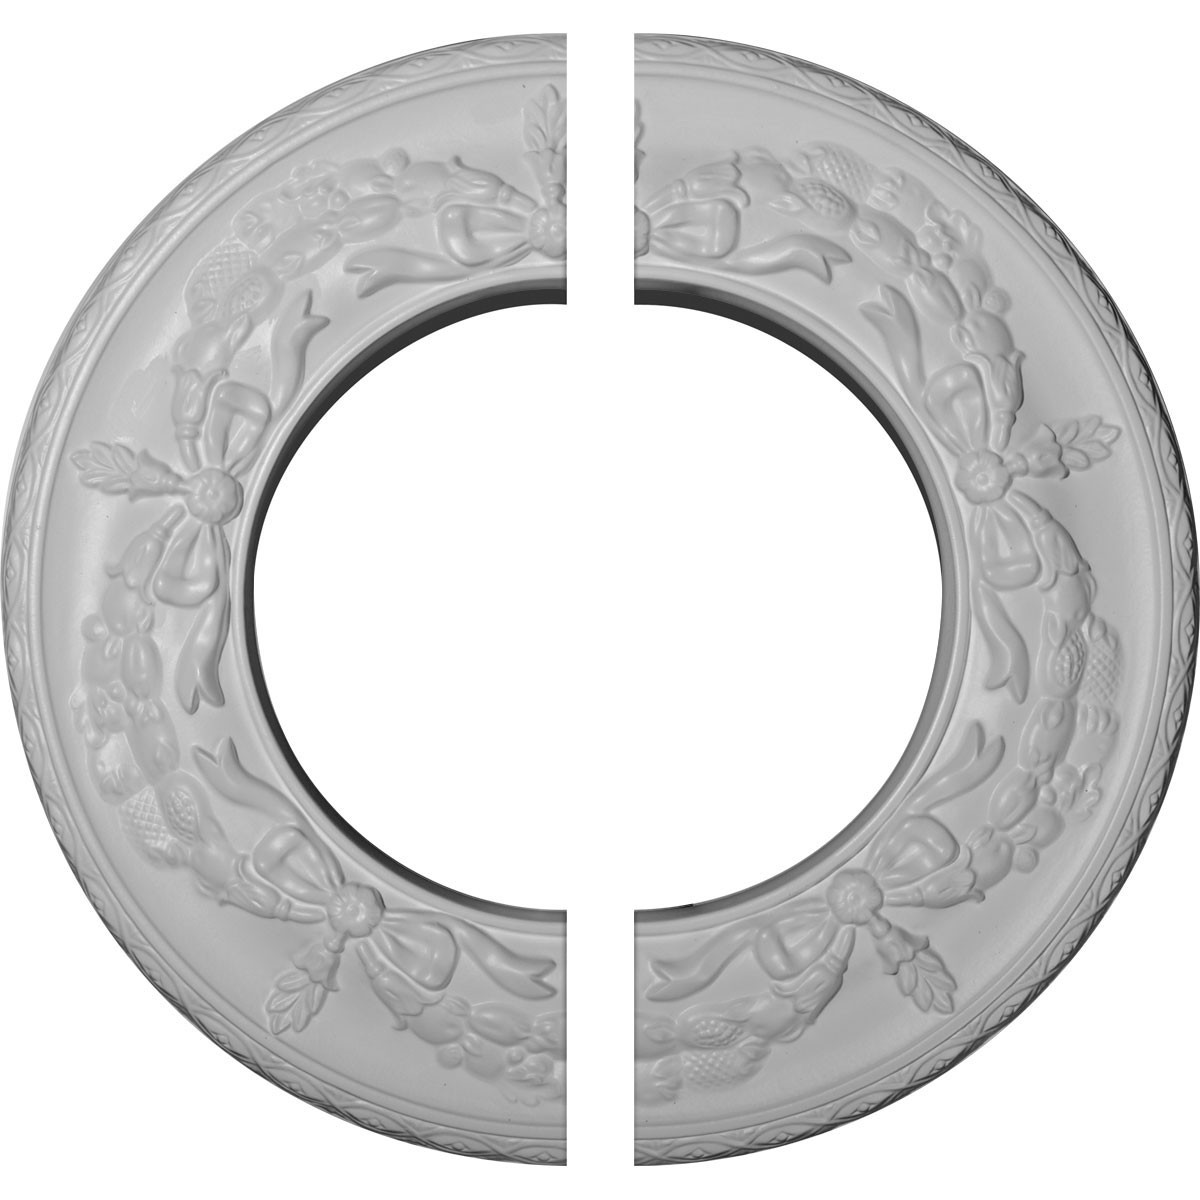 """EM-CM13SA2 - 13 1/4""""OD x 7 1/8""""ID x 7/8""""P Salem Ceiling Medallion, Two Piece (Fits Canopies up to 7 1/8"""")"""